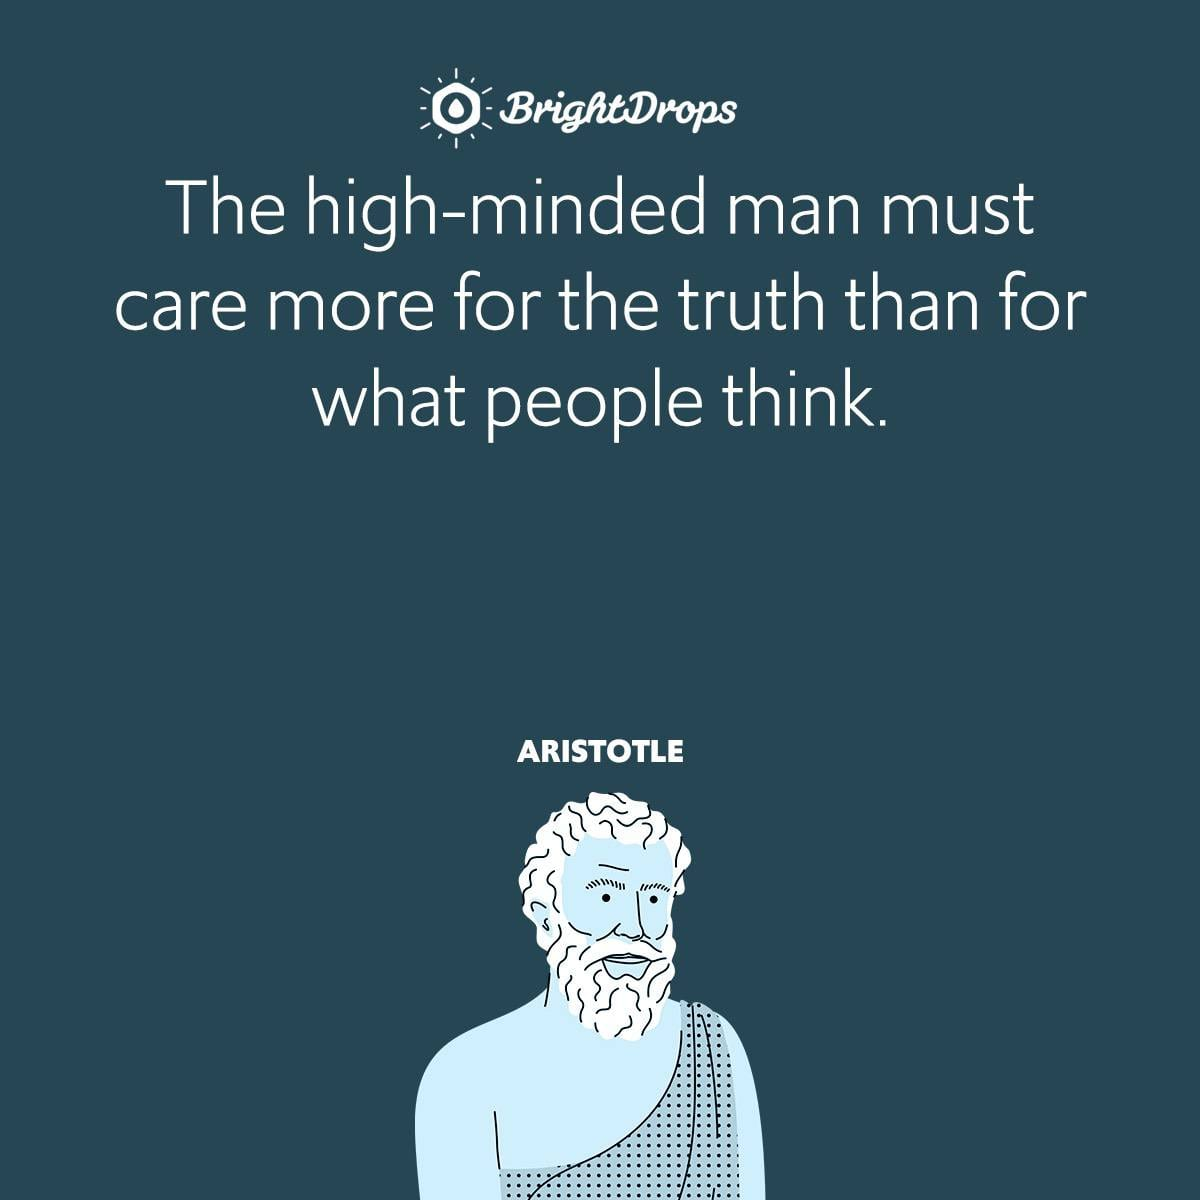 The high-minded man must care more for the truth than for what people think.